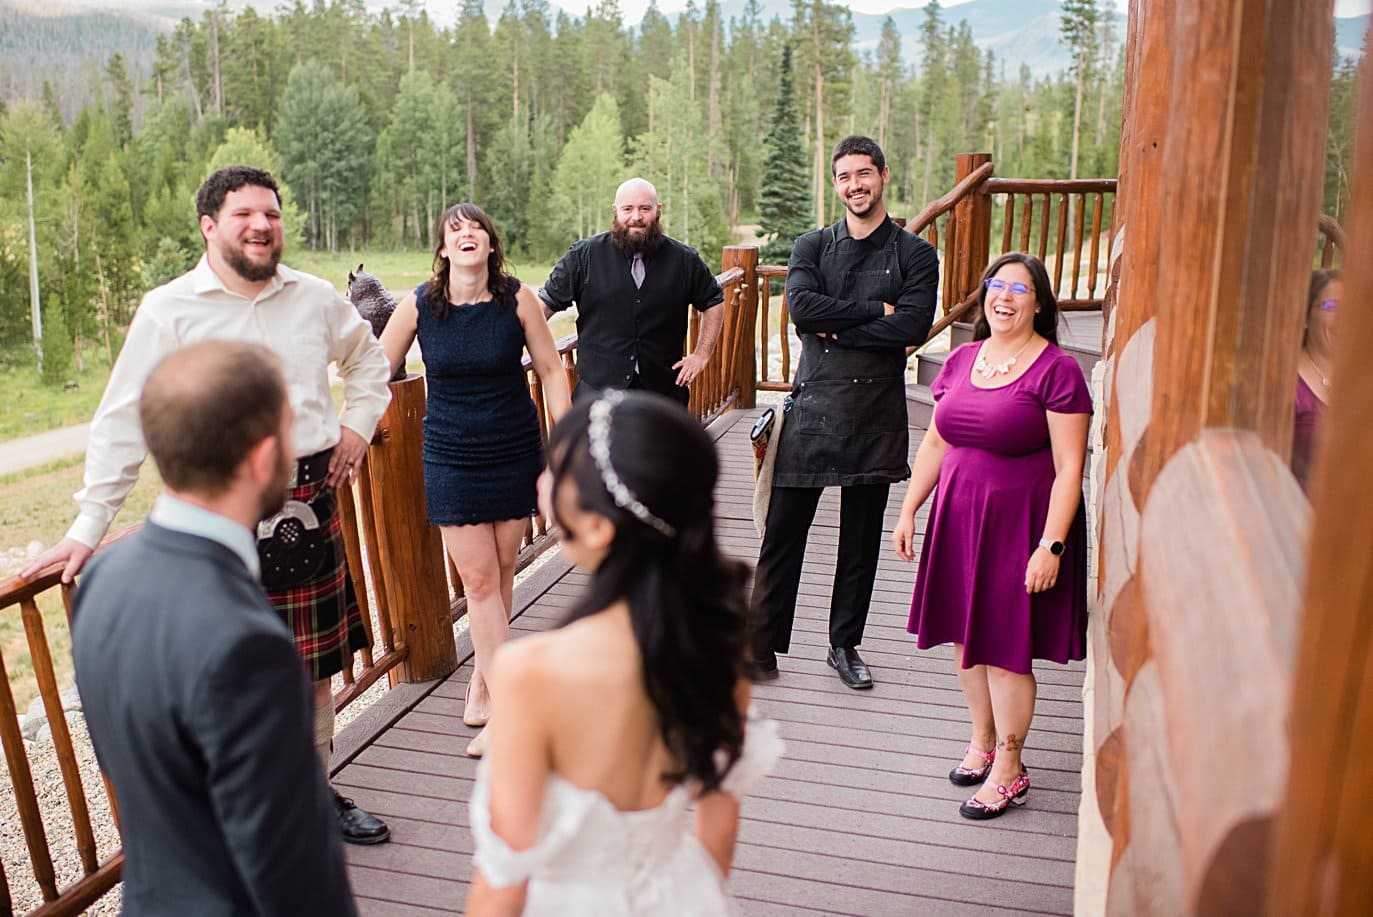 bride and groom talk with friends on porch before ceremony at intimate Grand Lake wedding by Denver wedding photographer Jennie Crate